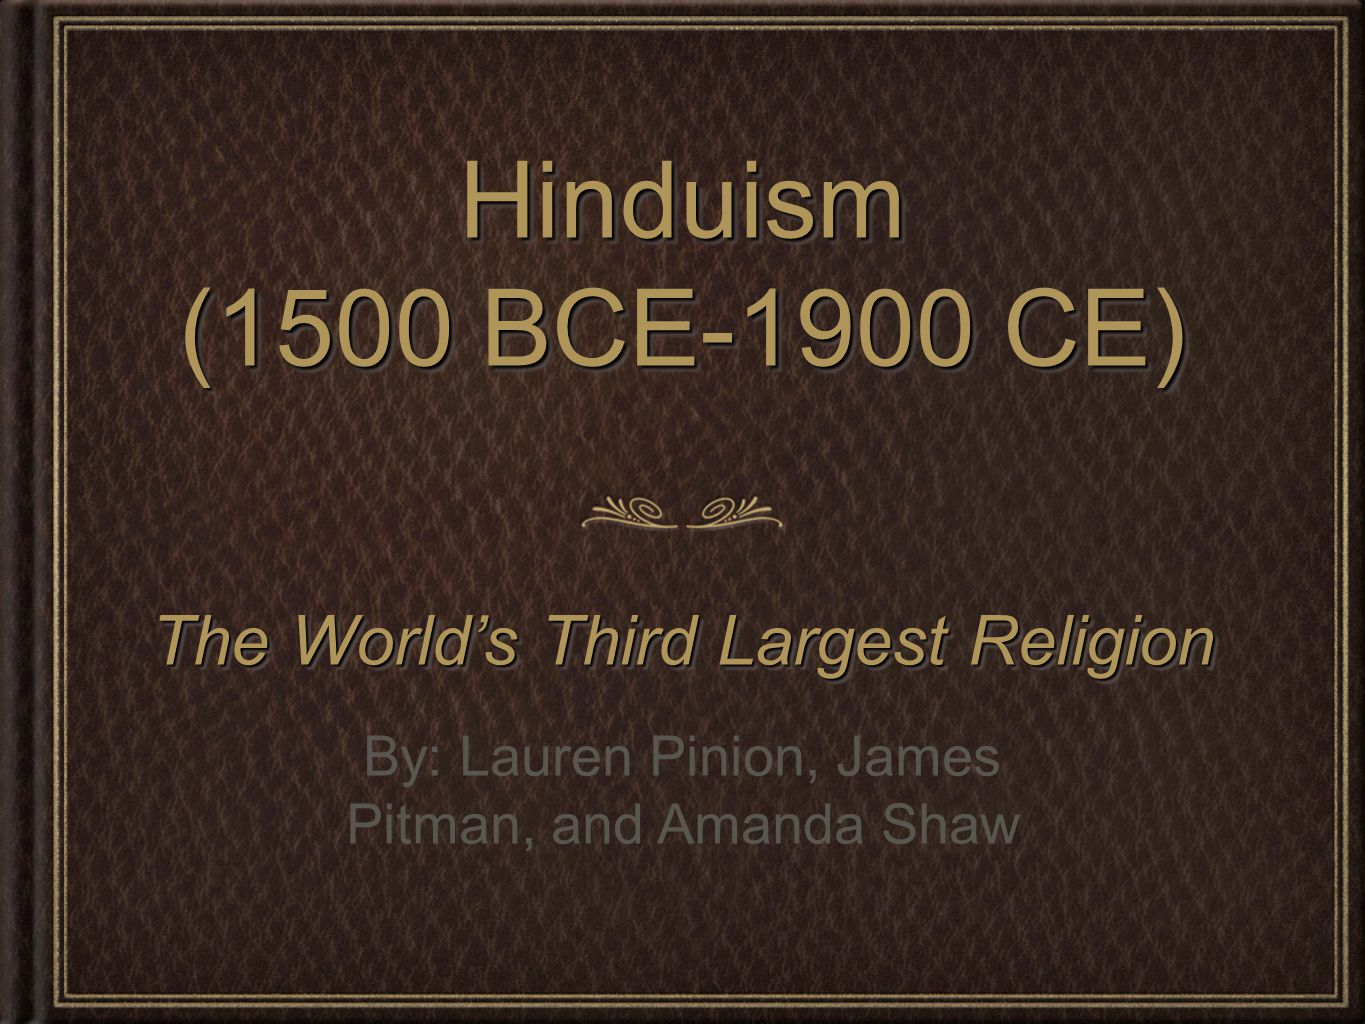 Hinduism (1500 BCE-1900 CE) The World's Third Largest Religion